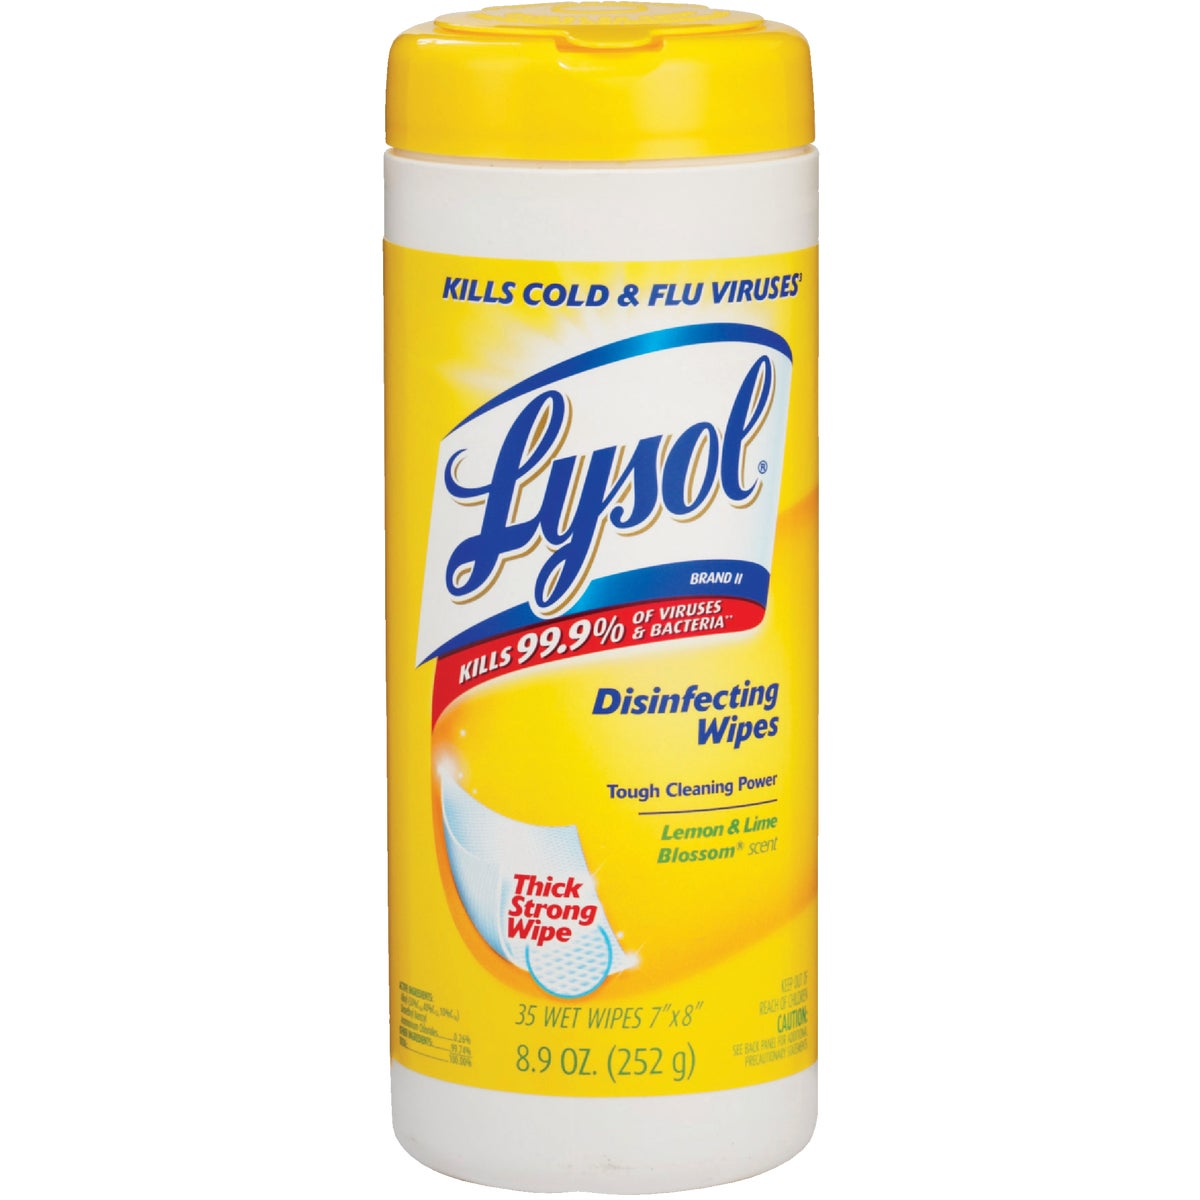 35CT LEM/LIM LYSOL WIPES - 1920081145 by Reckitt Benckiser